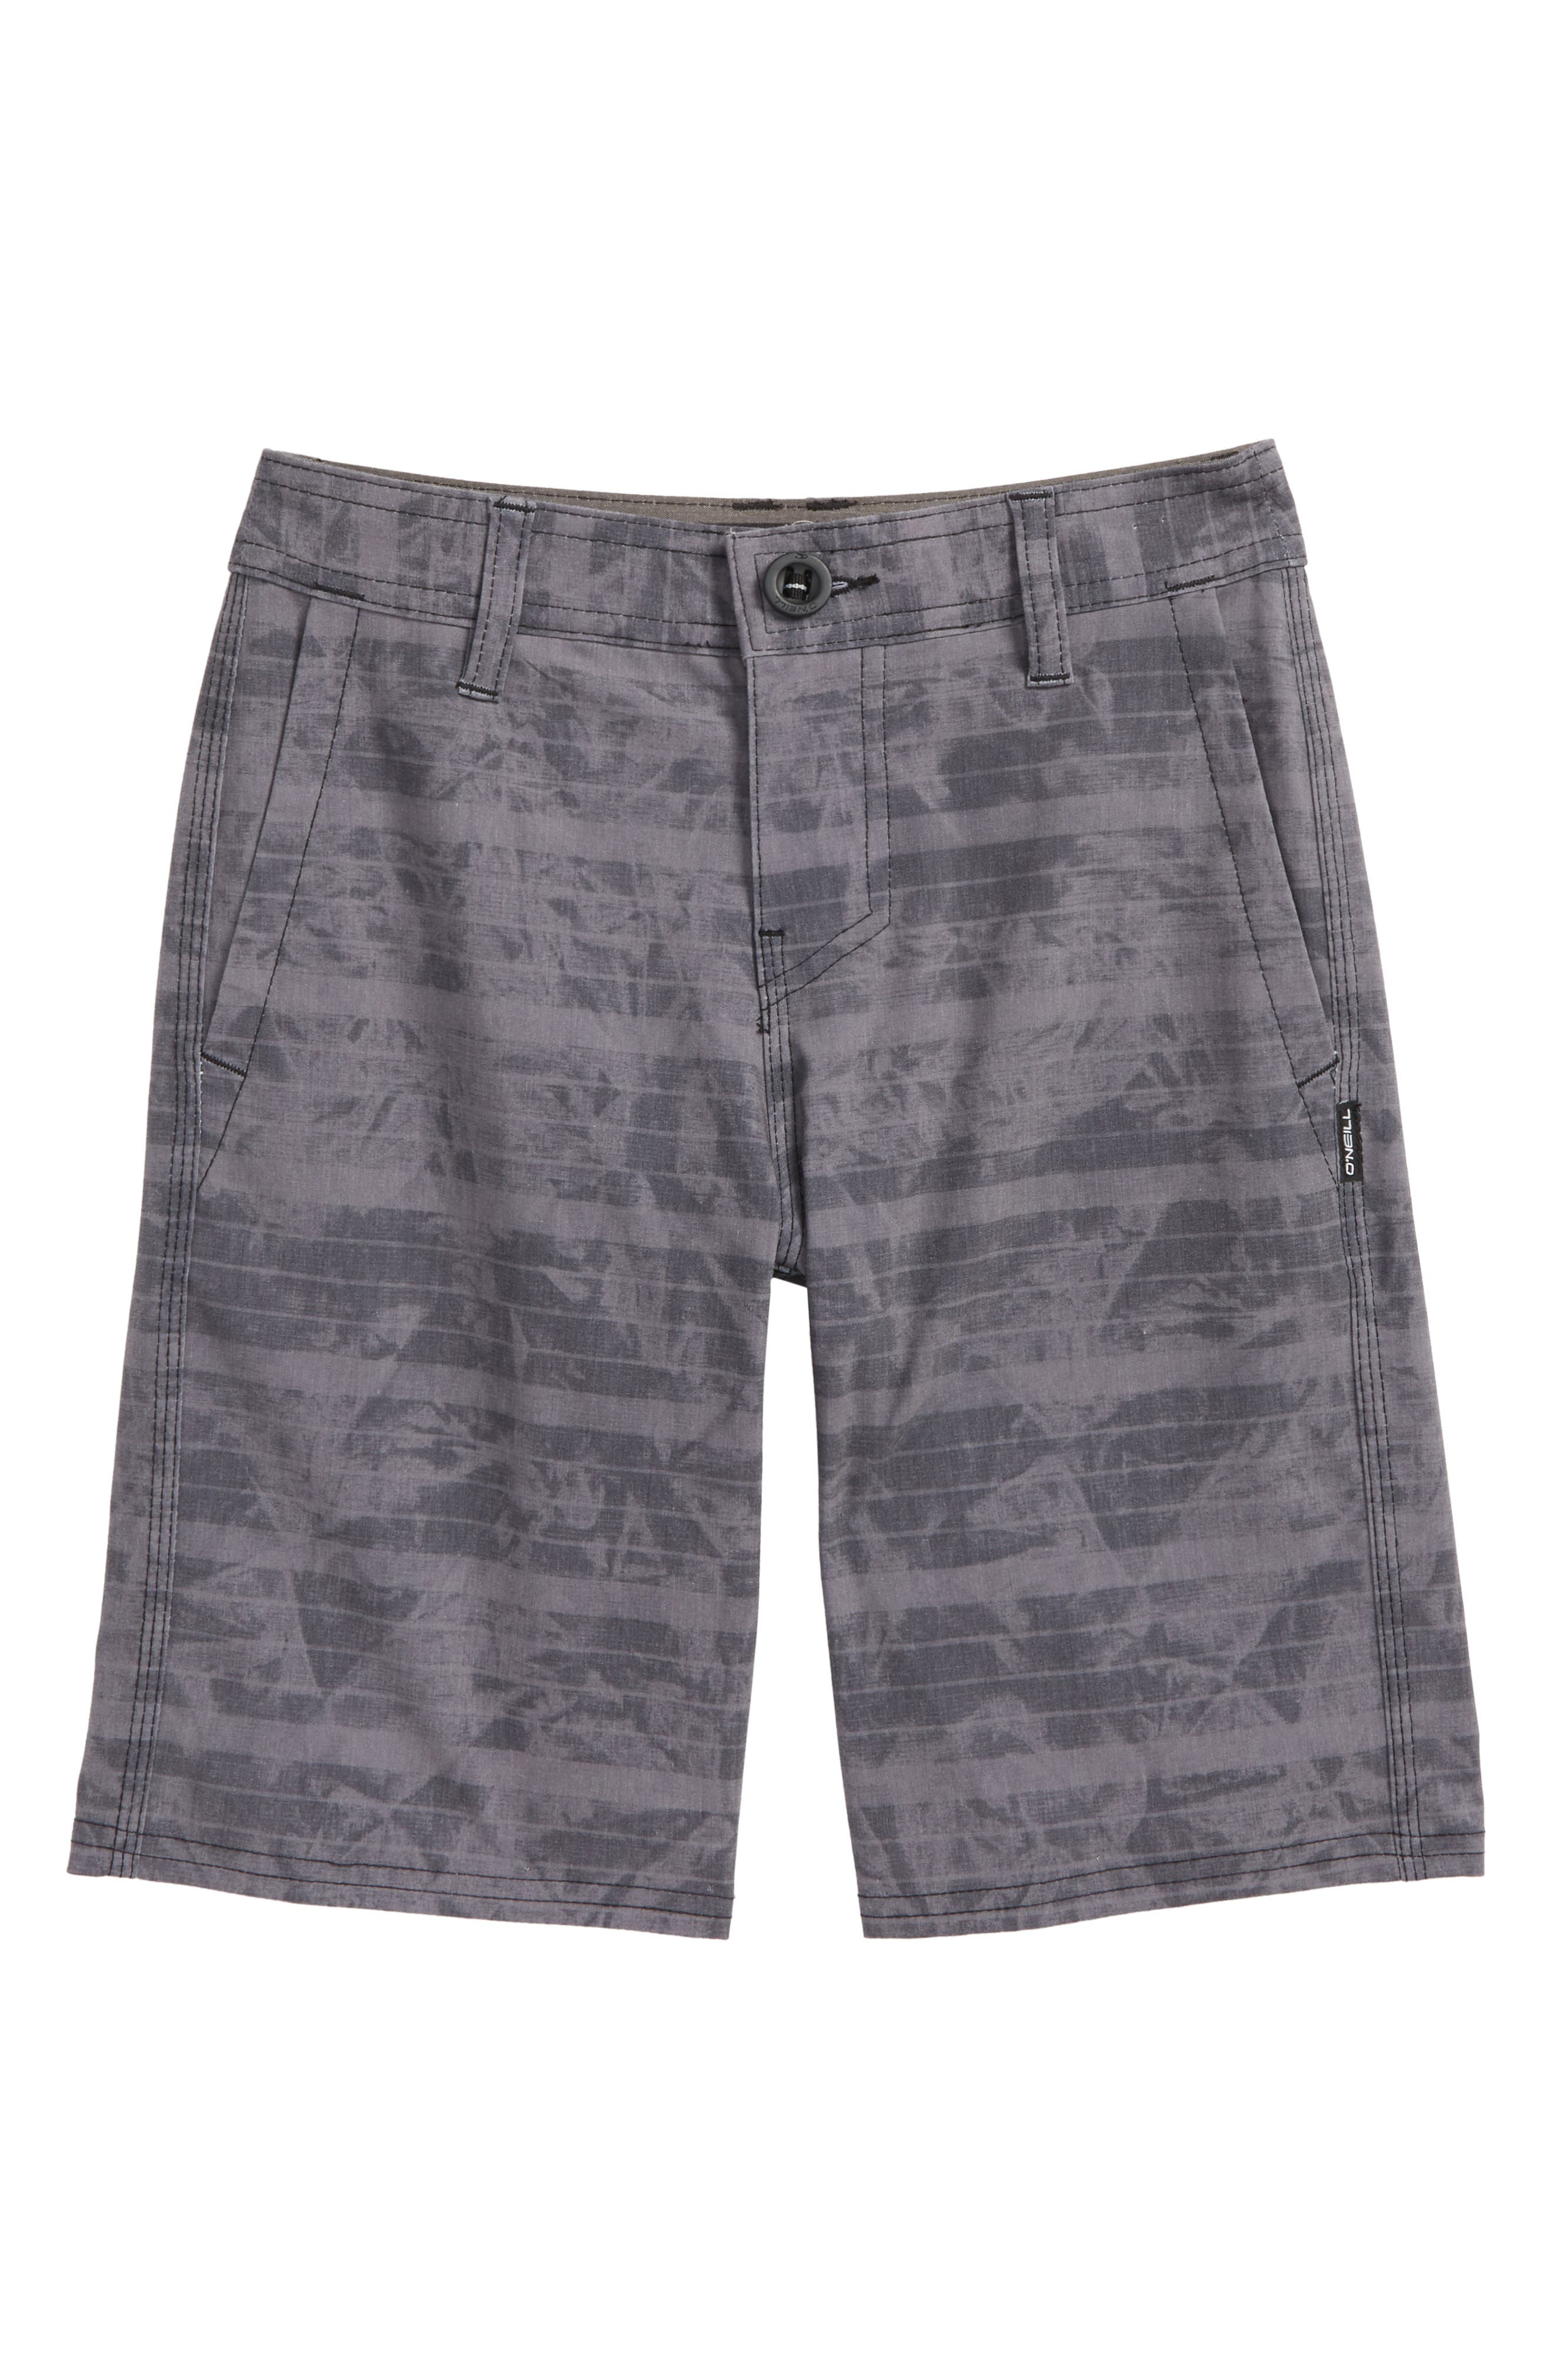 Mischief Hybrid Shorts,                         Main,                         color, 020